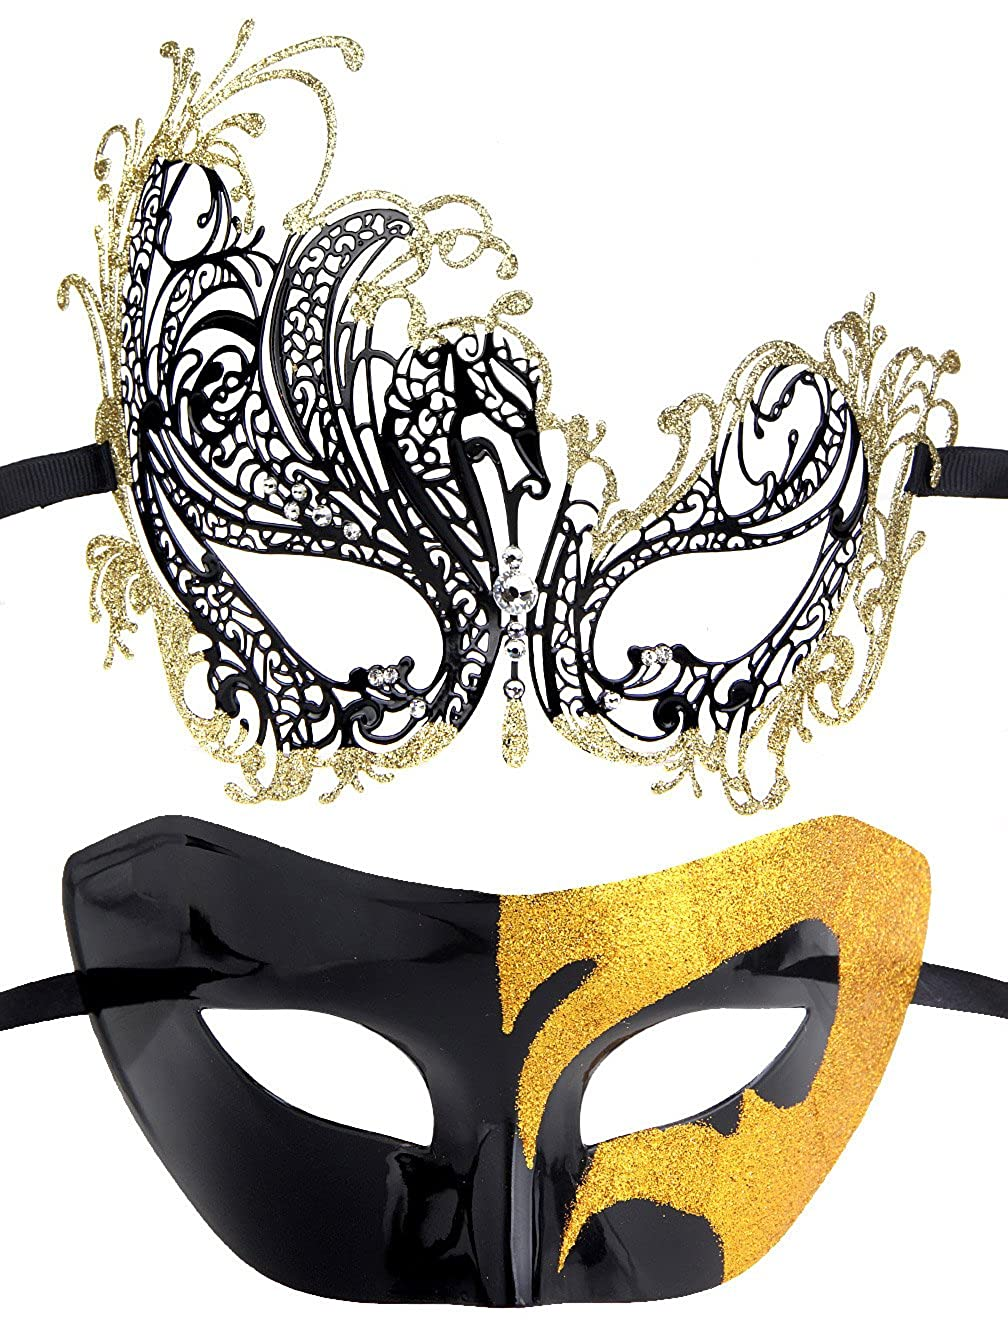 IETANG Couples Pair Half Venetian Masquerade Ball Mask Set Party Costume Accessory